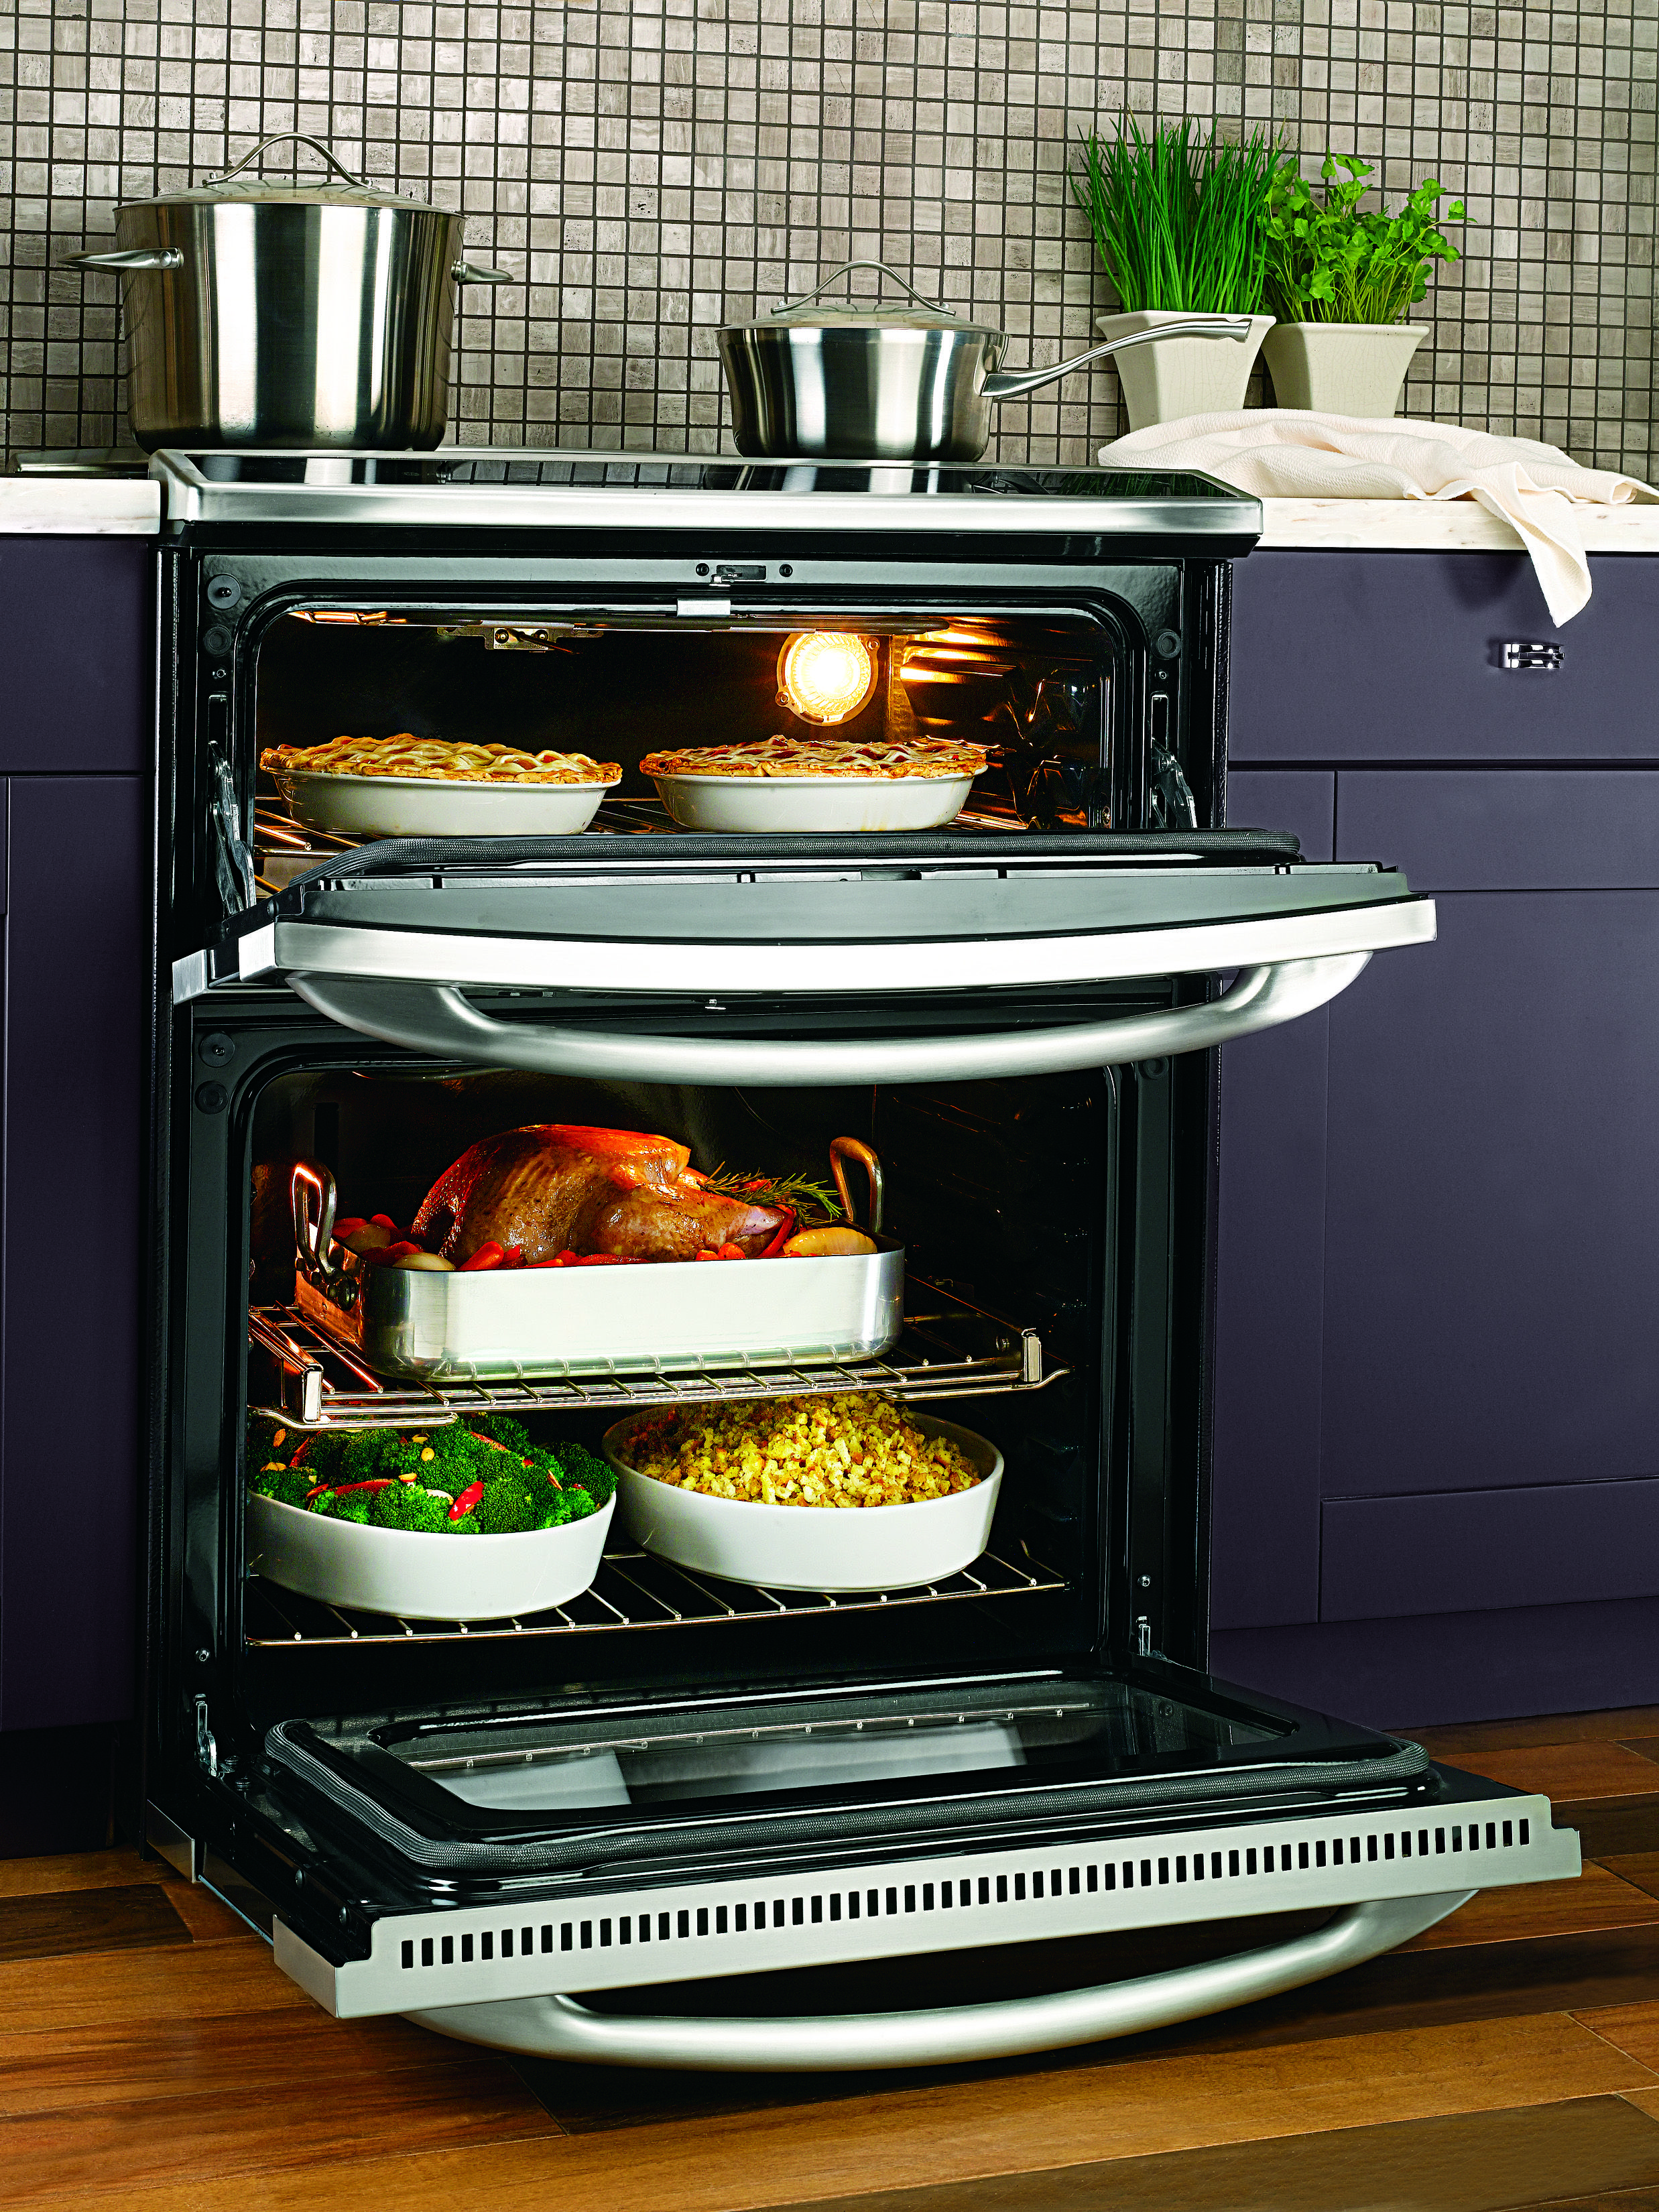 Our Slide In Electric Double Oven Model Ps978stss Includes Self